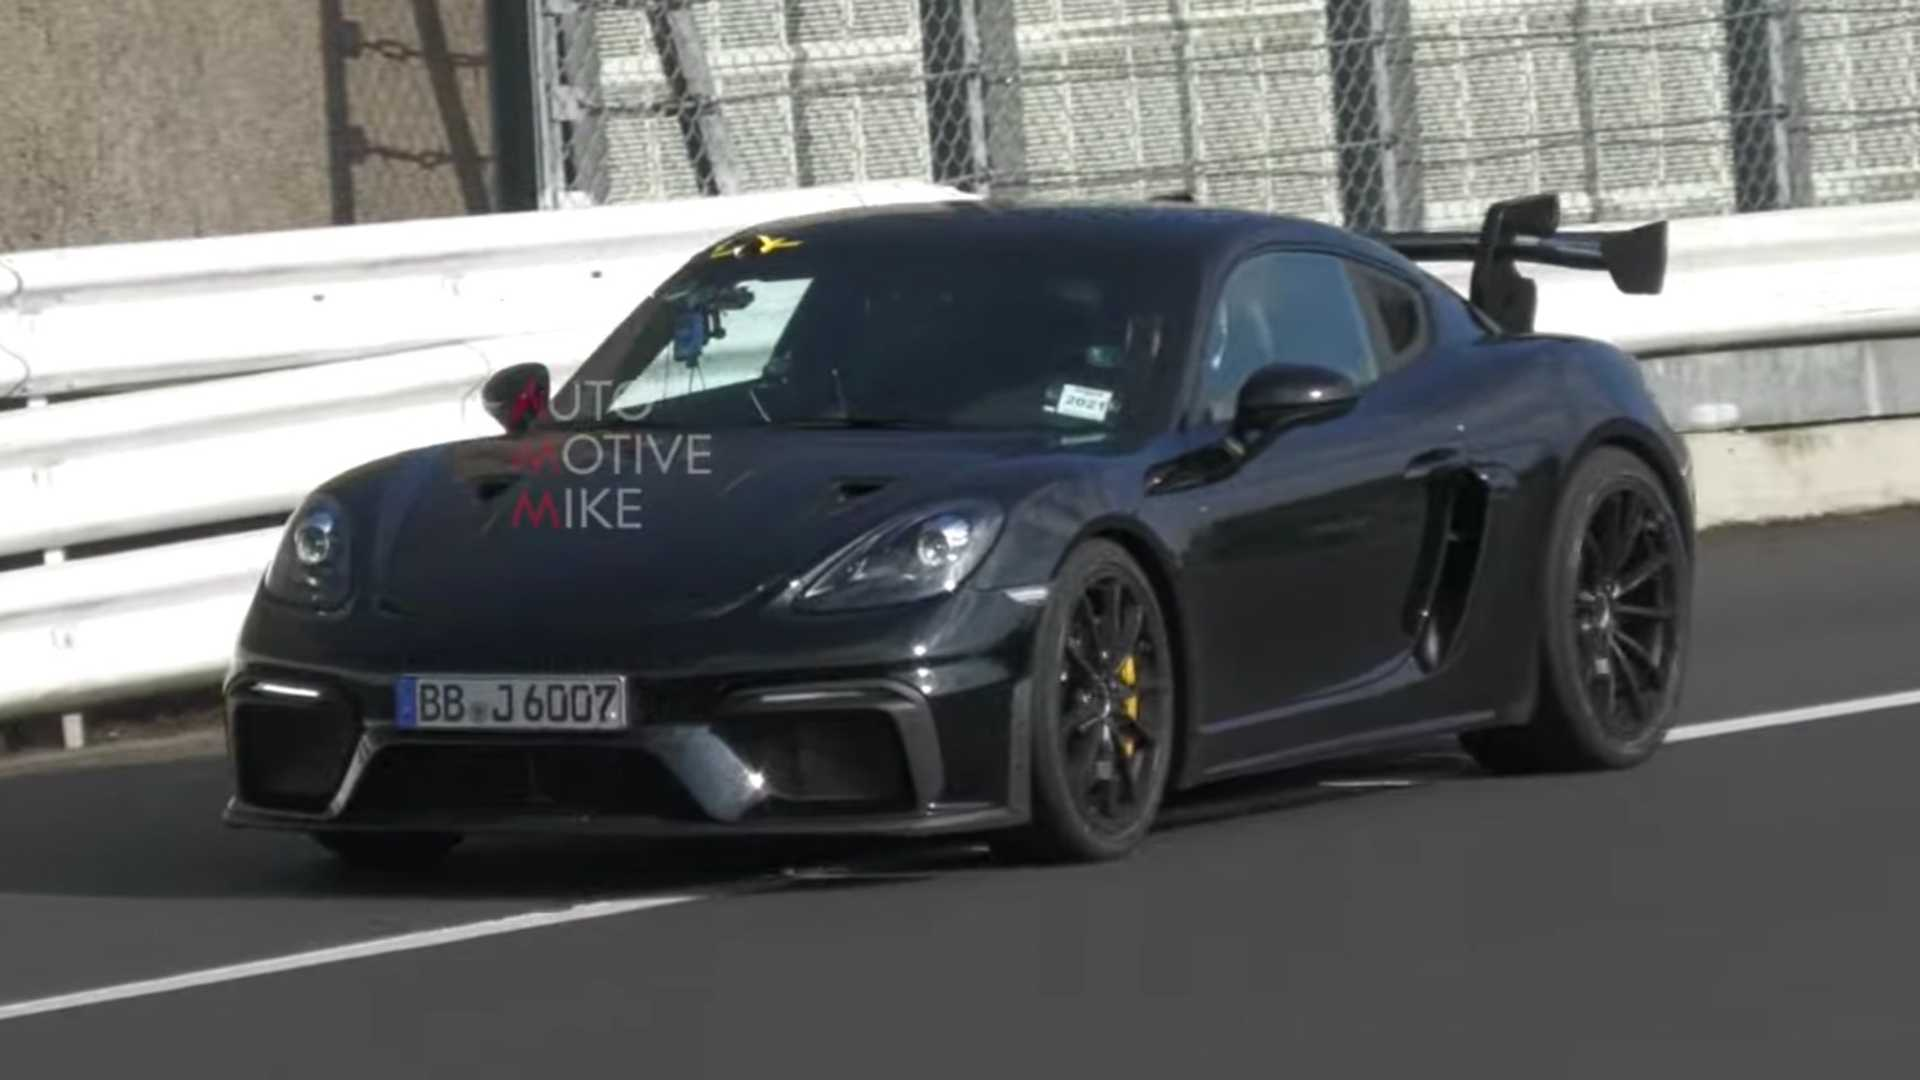 Porsche 718 Cayman GT4 RS Spied On Video Doing Lots Of Nurburgring Laps